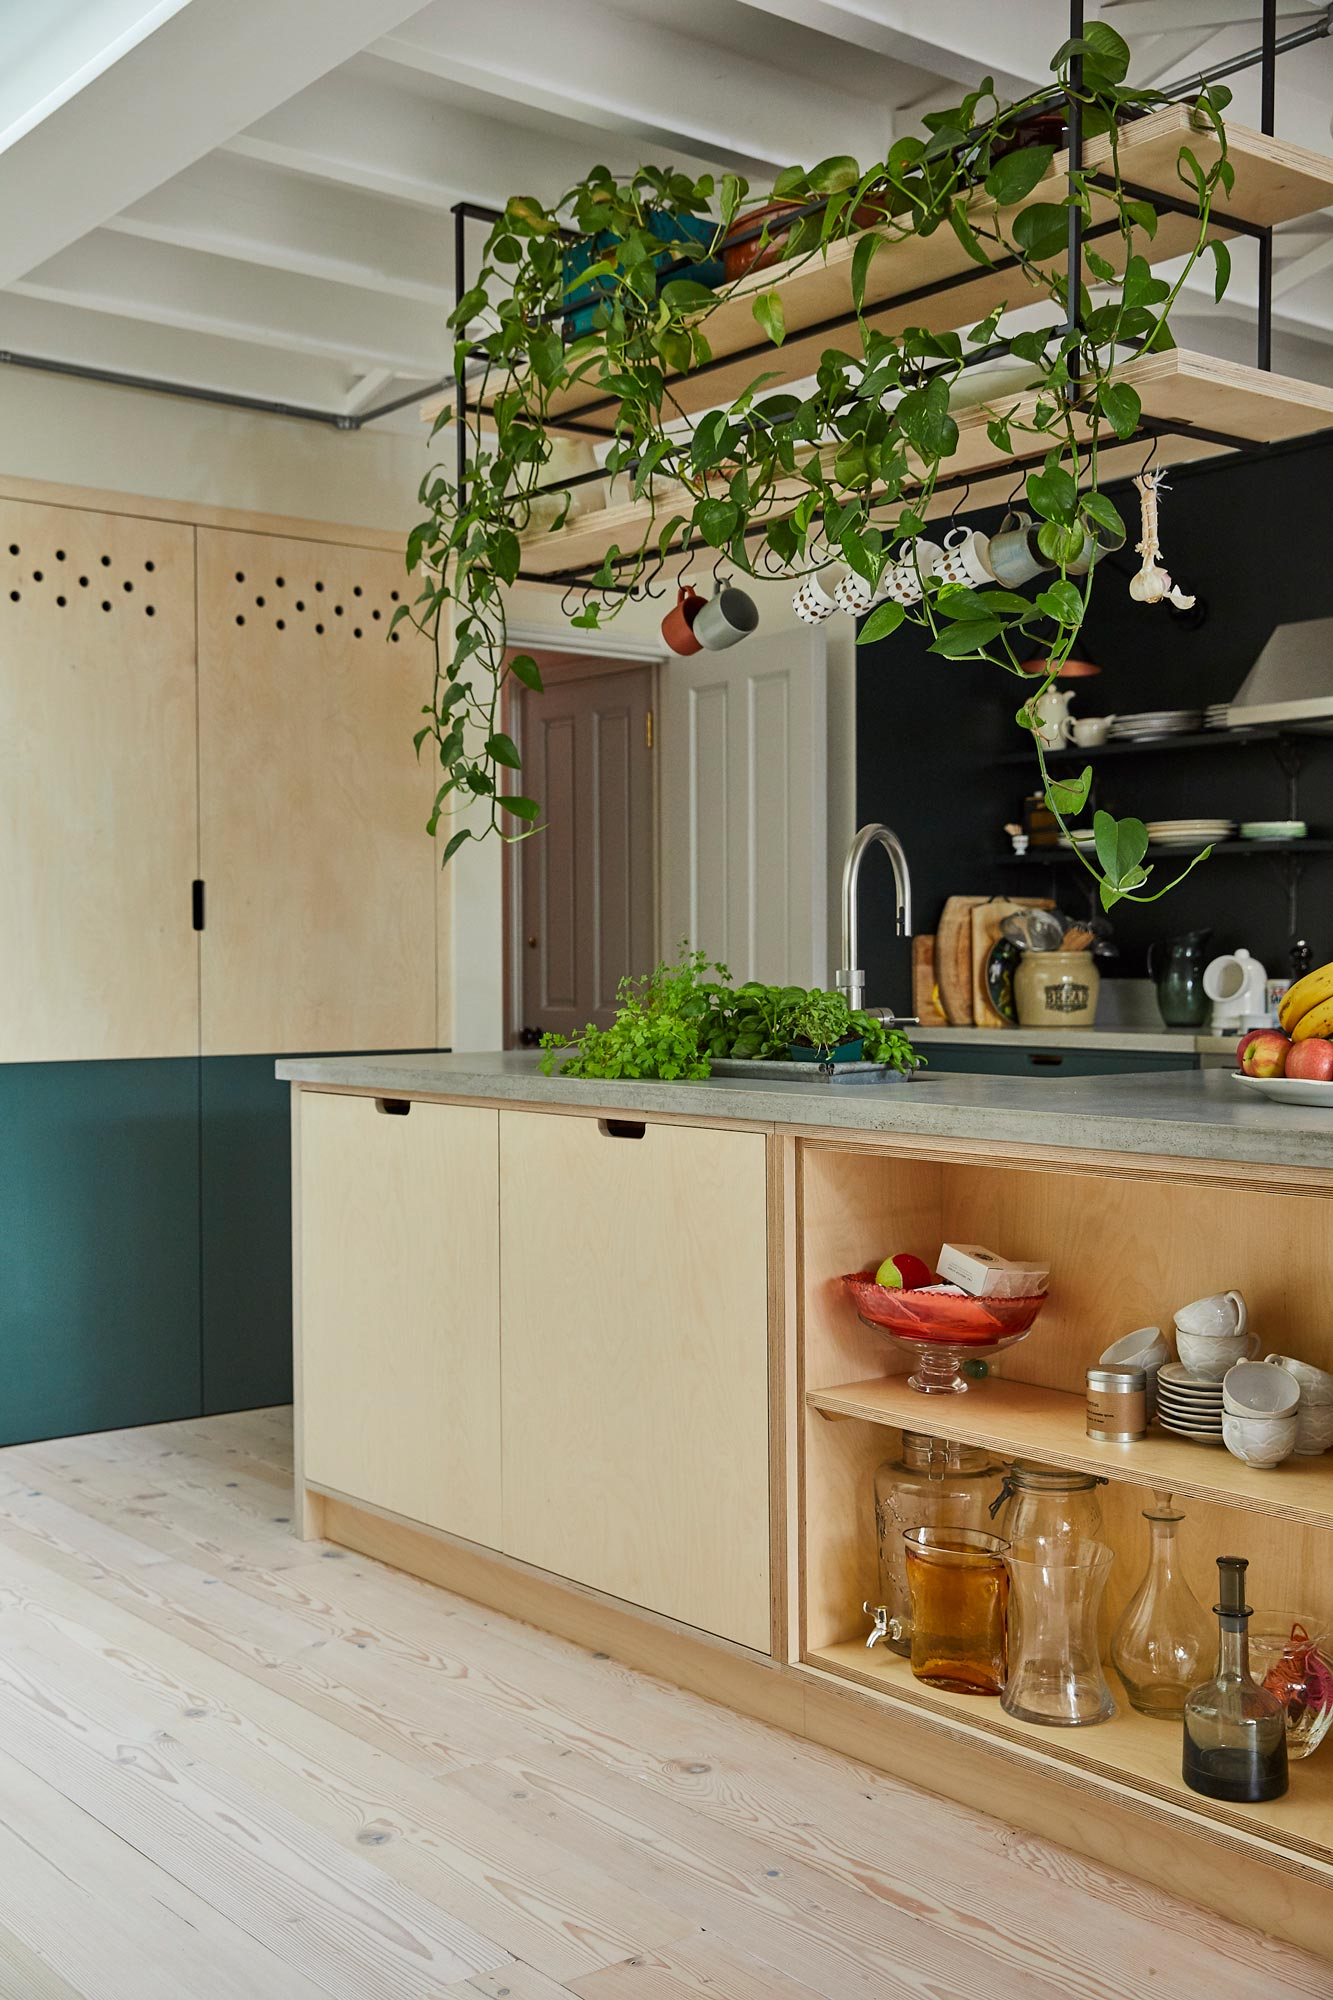 Bespoke plywood kitchen island with hanging open shelves above with plants hanging down